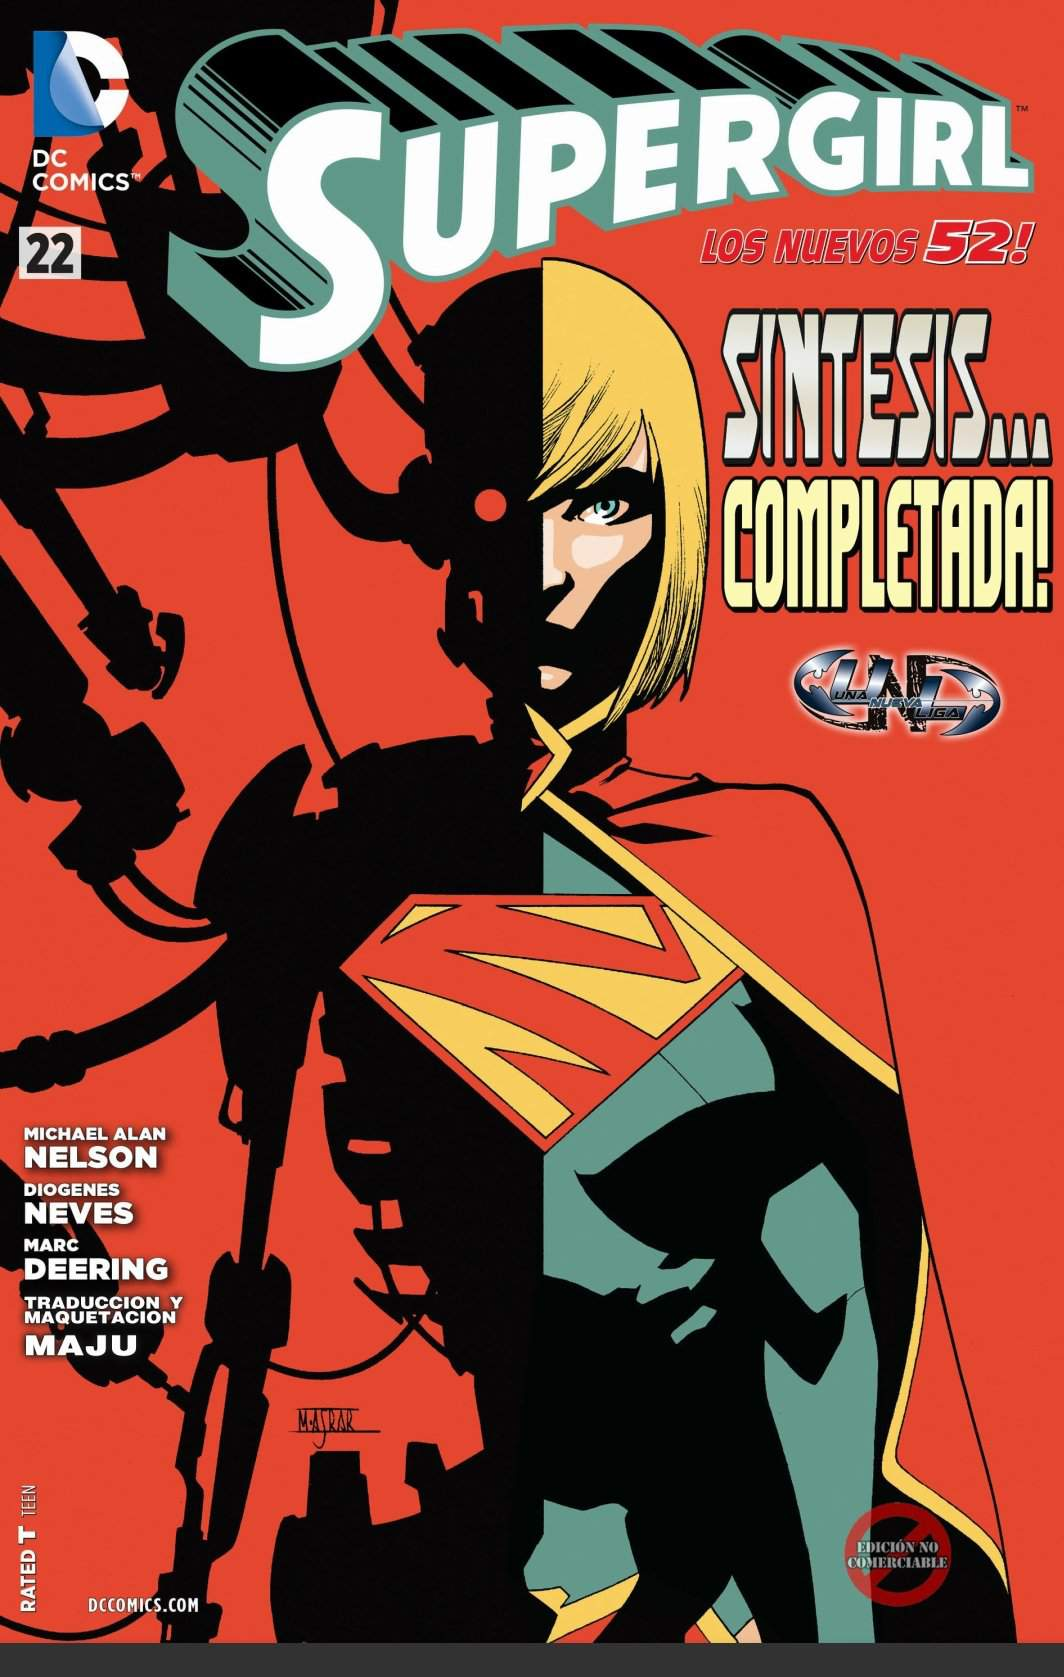 Supergirl #22 The New 52 | Wiki | Supergirl en Español Amino